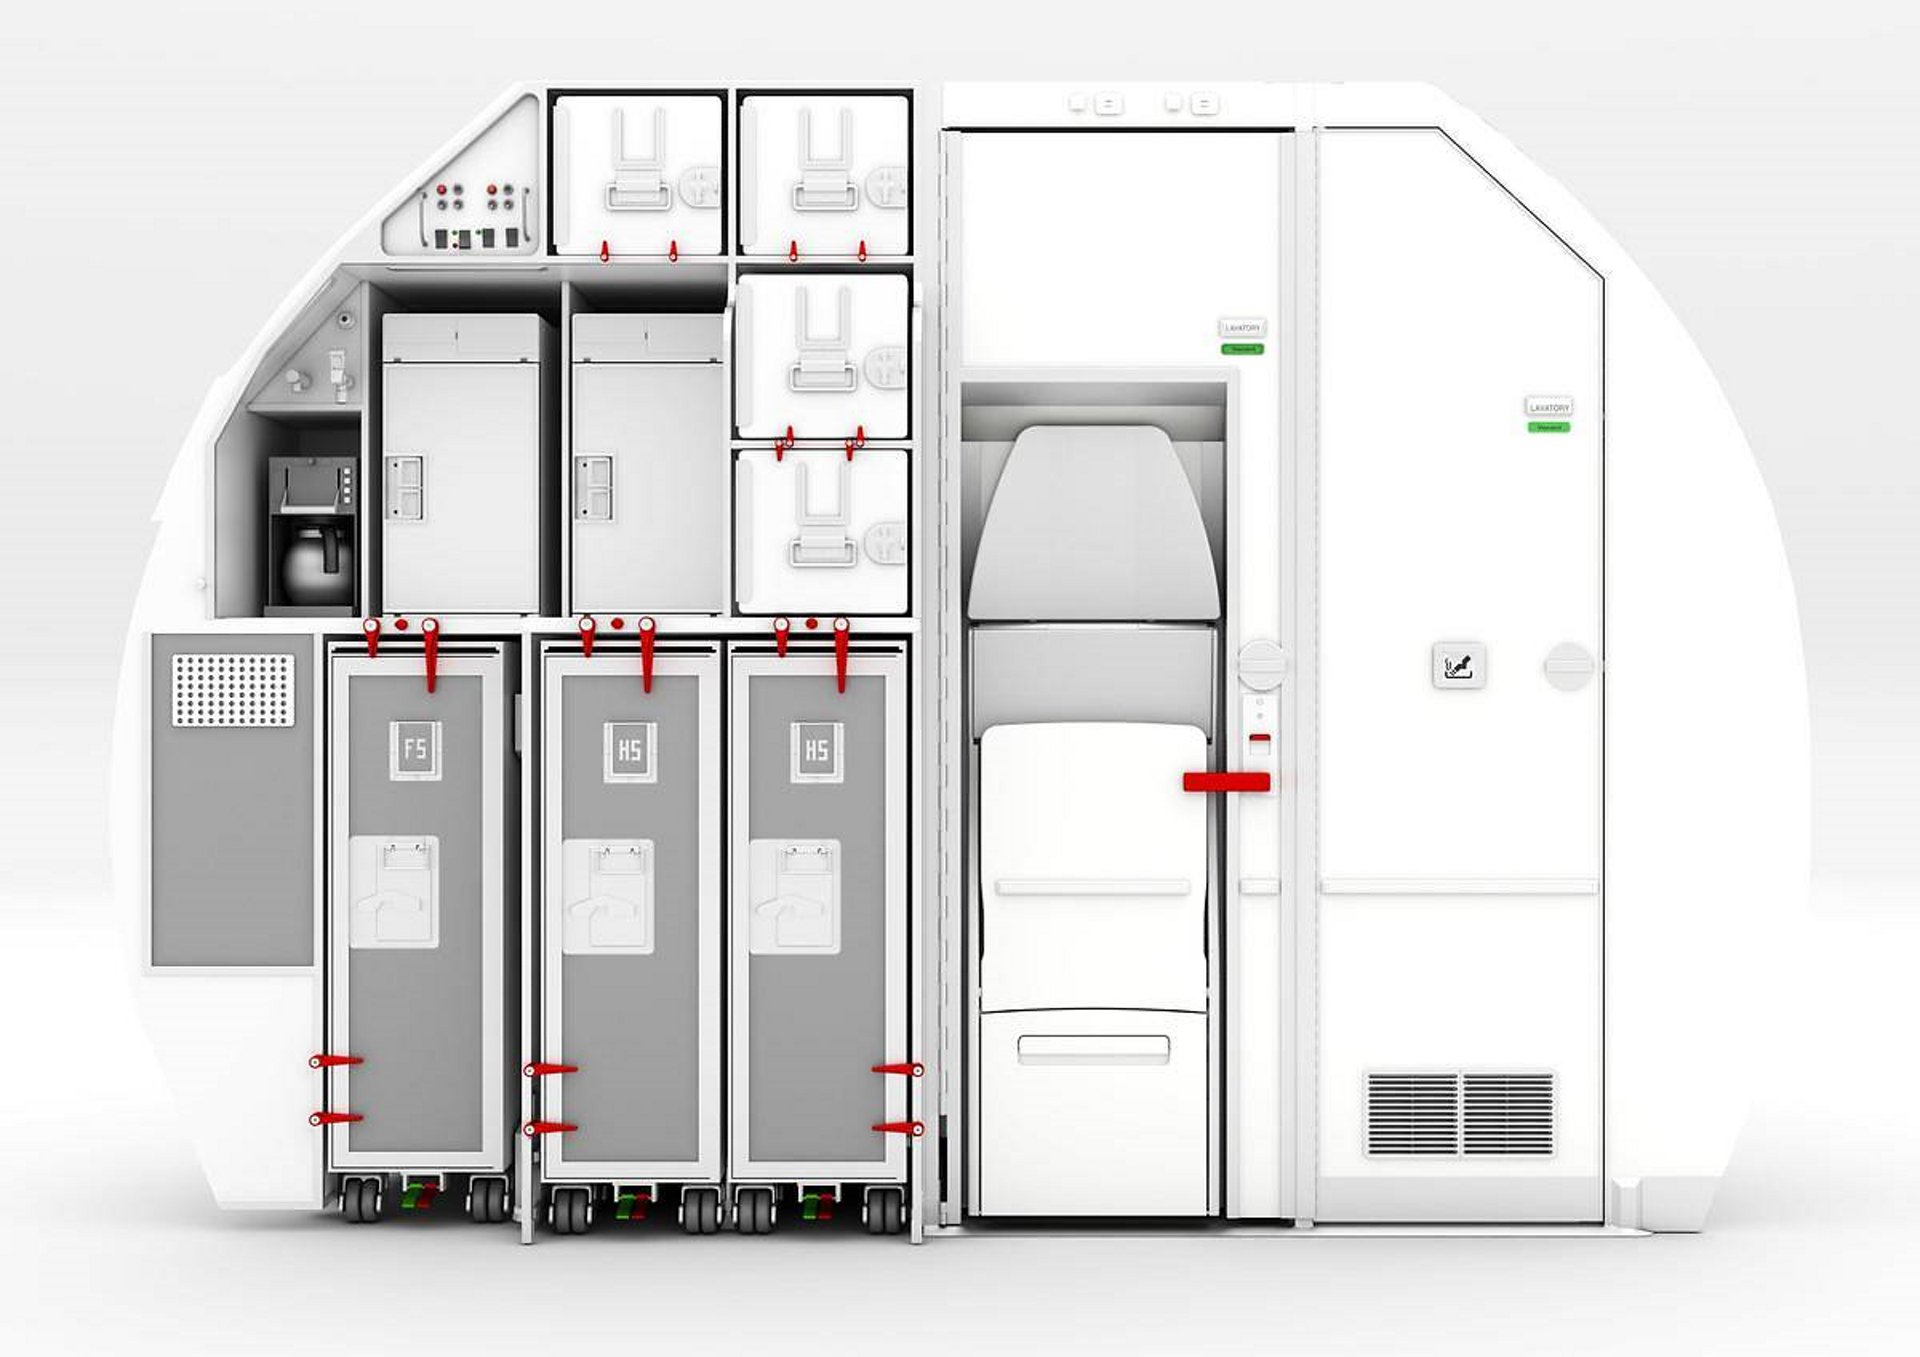 Space-Flex is a new rear galley and lavatory configuration that makes more efficient use of the rear cabin volume and offers the first Person with Reduced Mobility capable lavatory on A320 Family.